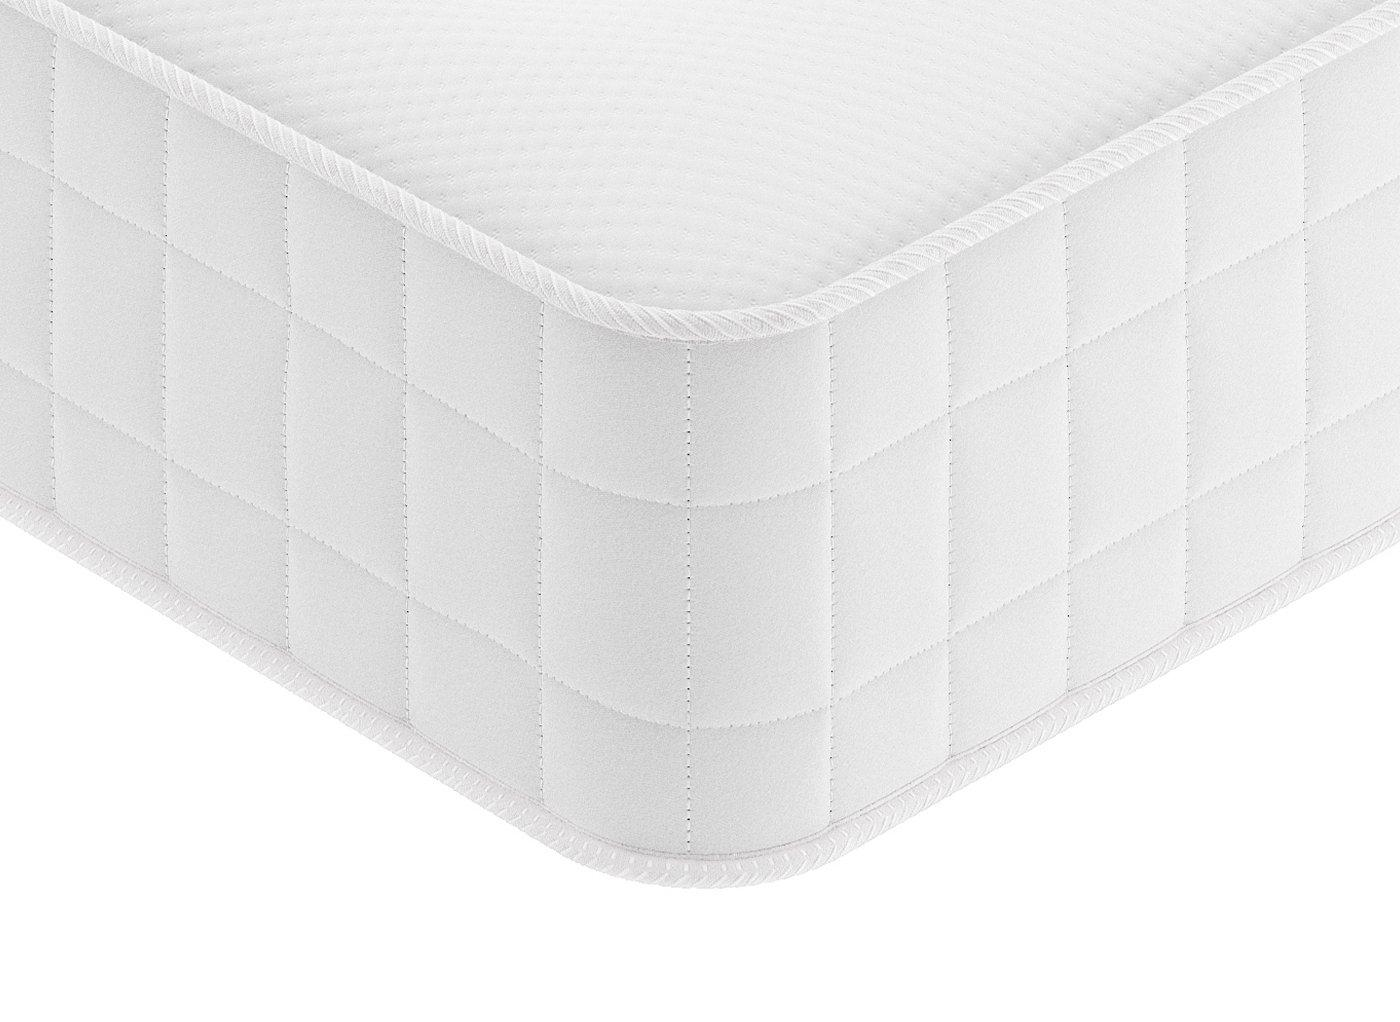 Therapur actigel response 1600 d mattress 4'6 double